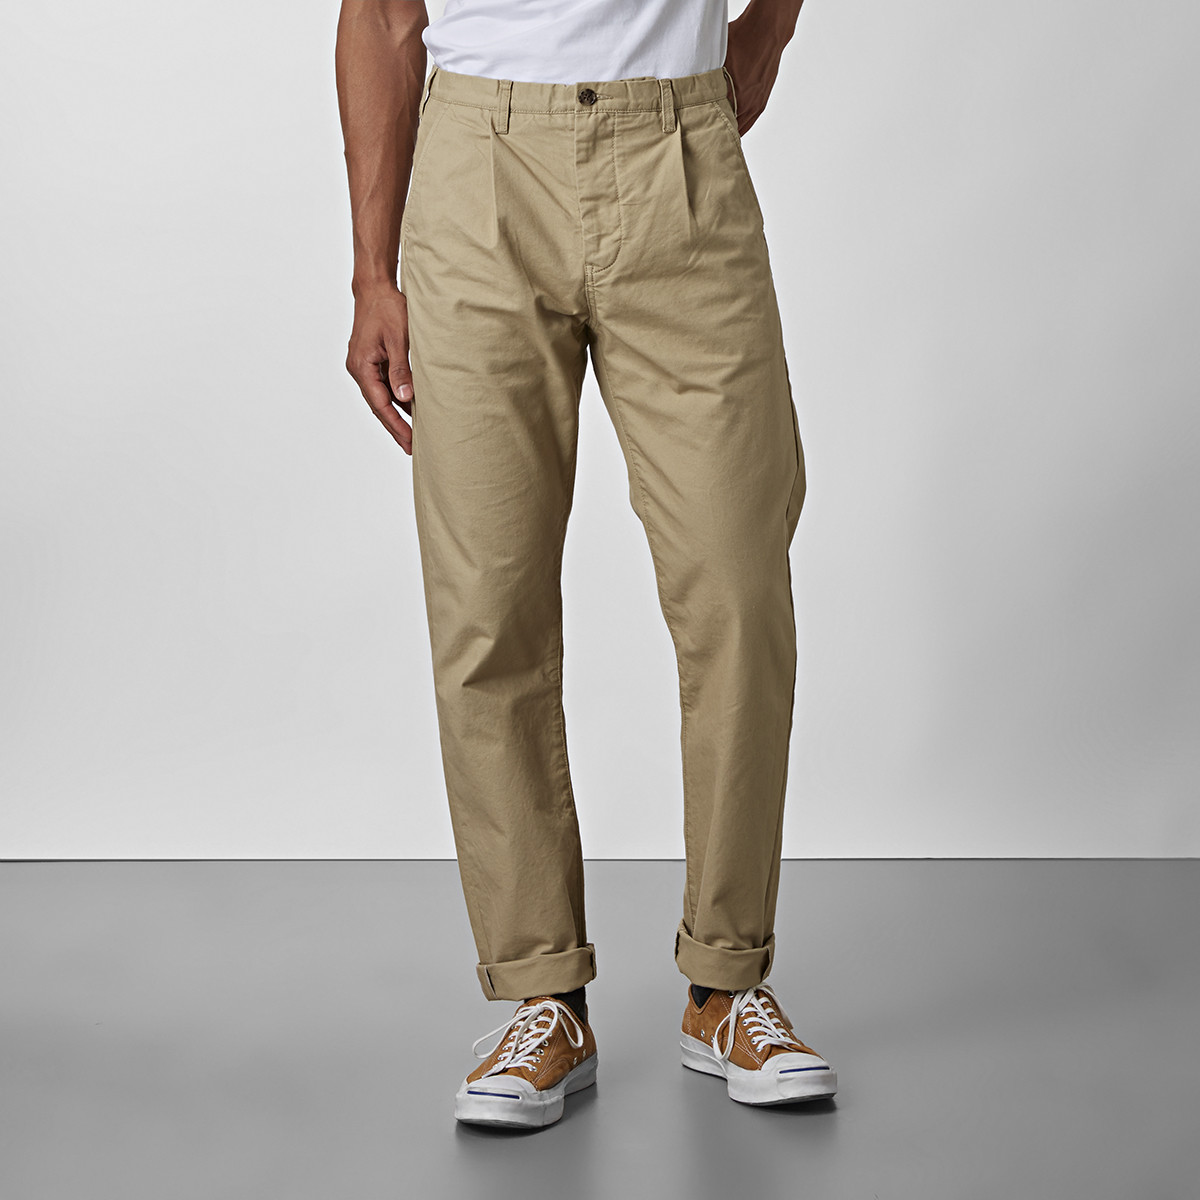 Chinos Bailey Beige | East West | Brothers.se